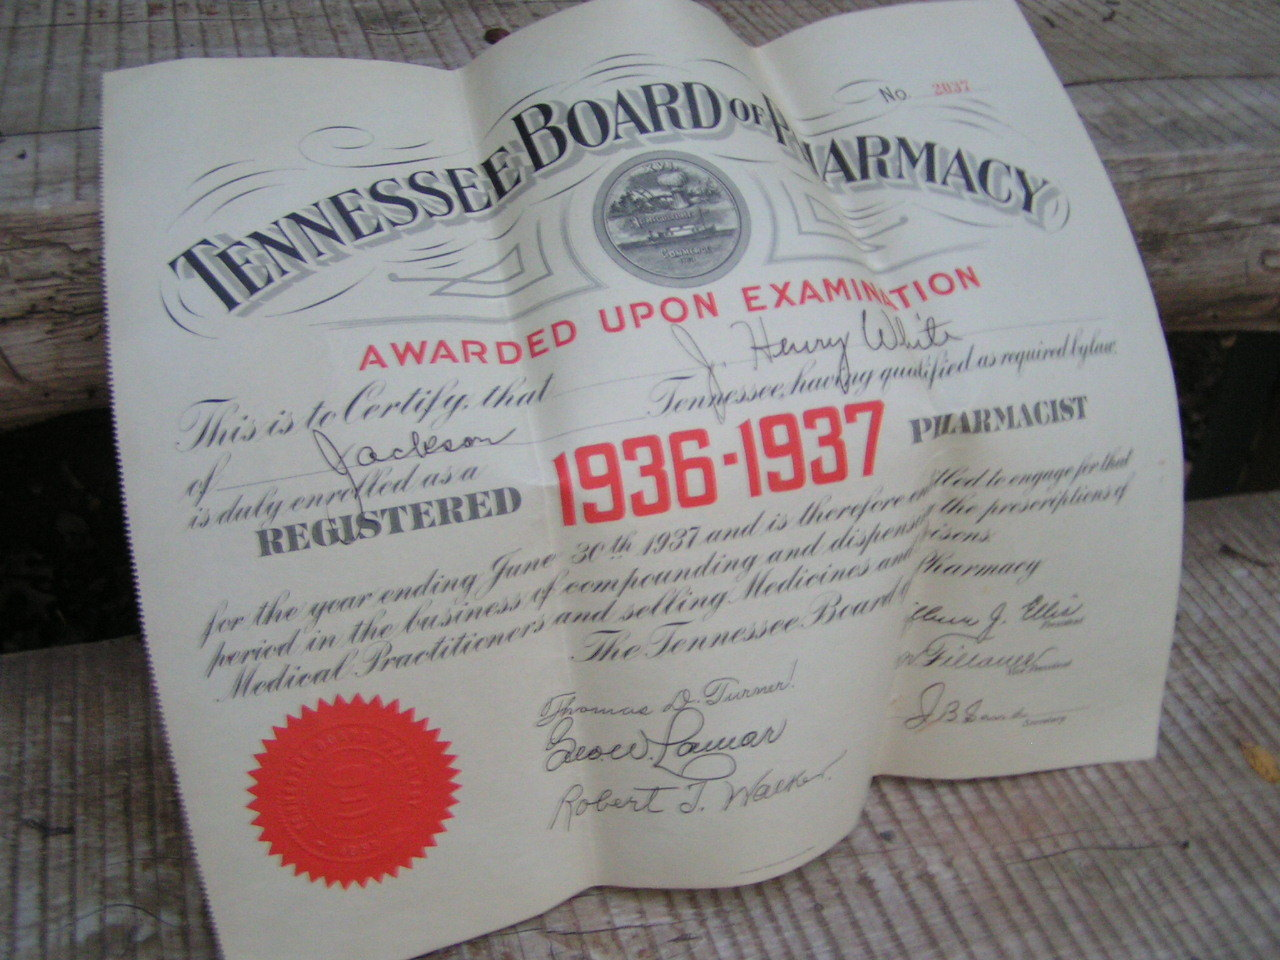 1936 1937 tennessee board of pharmacy diploma certificate